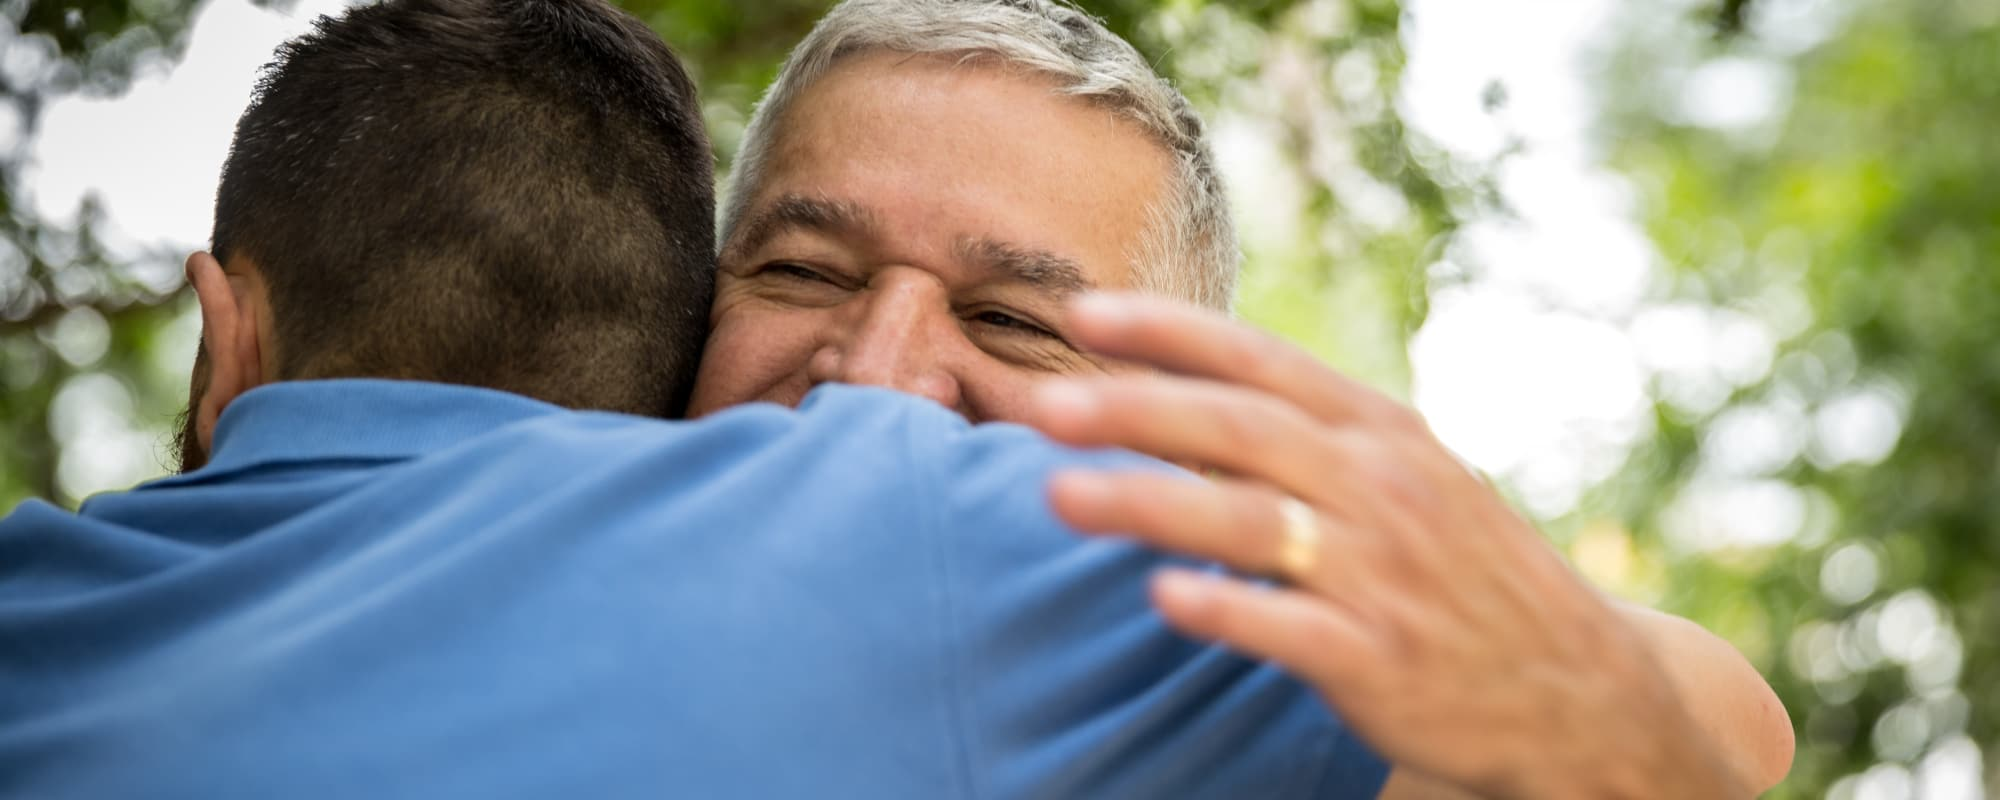 A resident hugging his son at Almond Heights in Orangevale, California